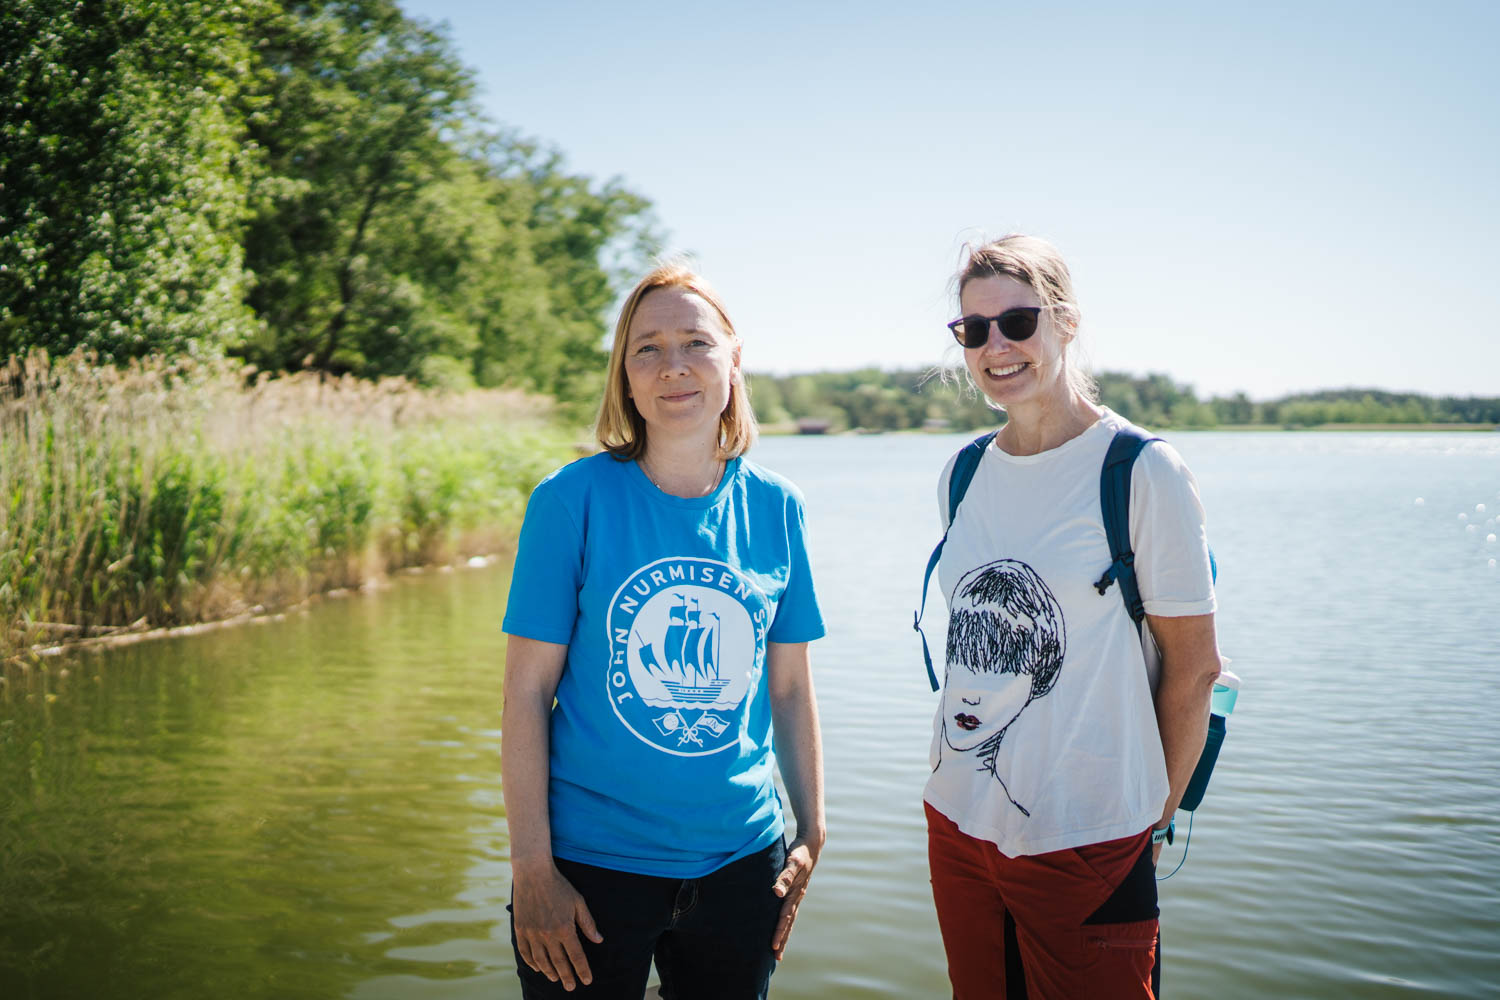 Marjukka Porvari from John Nurminen Foundation and Irma Puttonen from the Centre for Economic Development, Transport and the Environment for Southwest Finland standing on a dock, smiling.